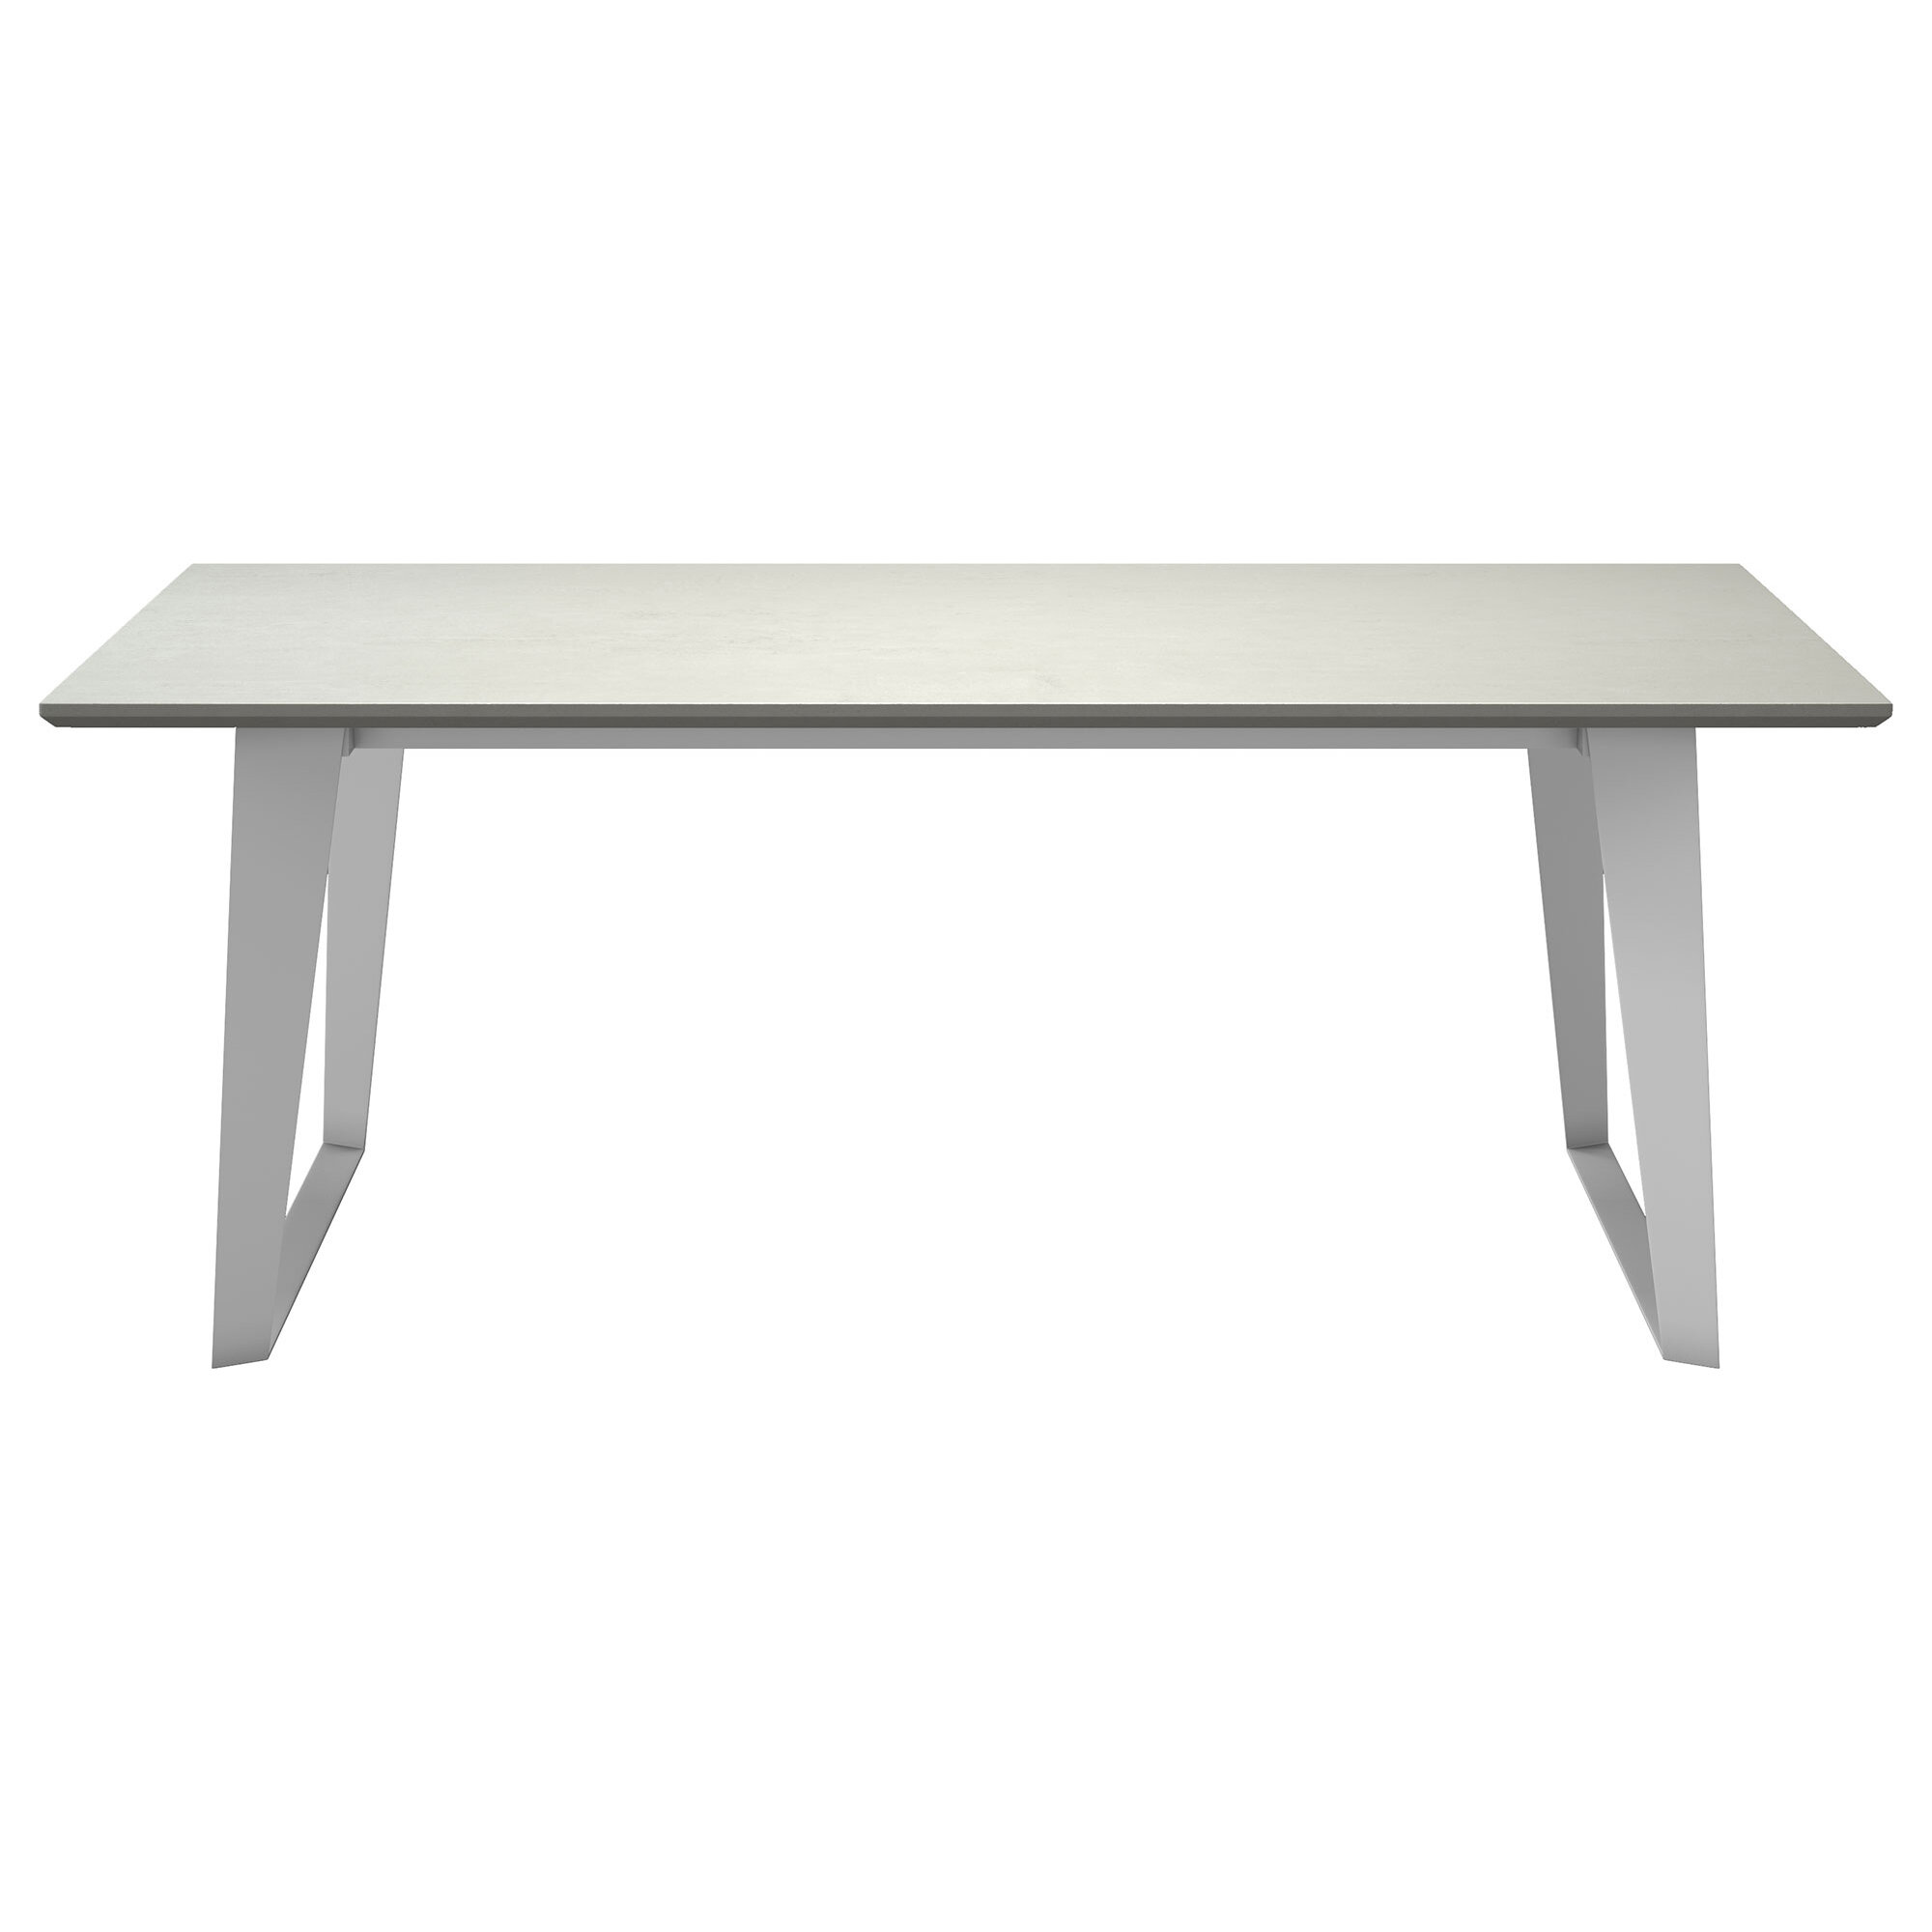 Amsterdam steel concrete dining table reviews allmodern